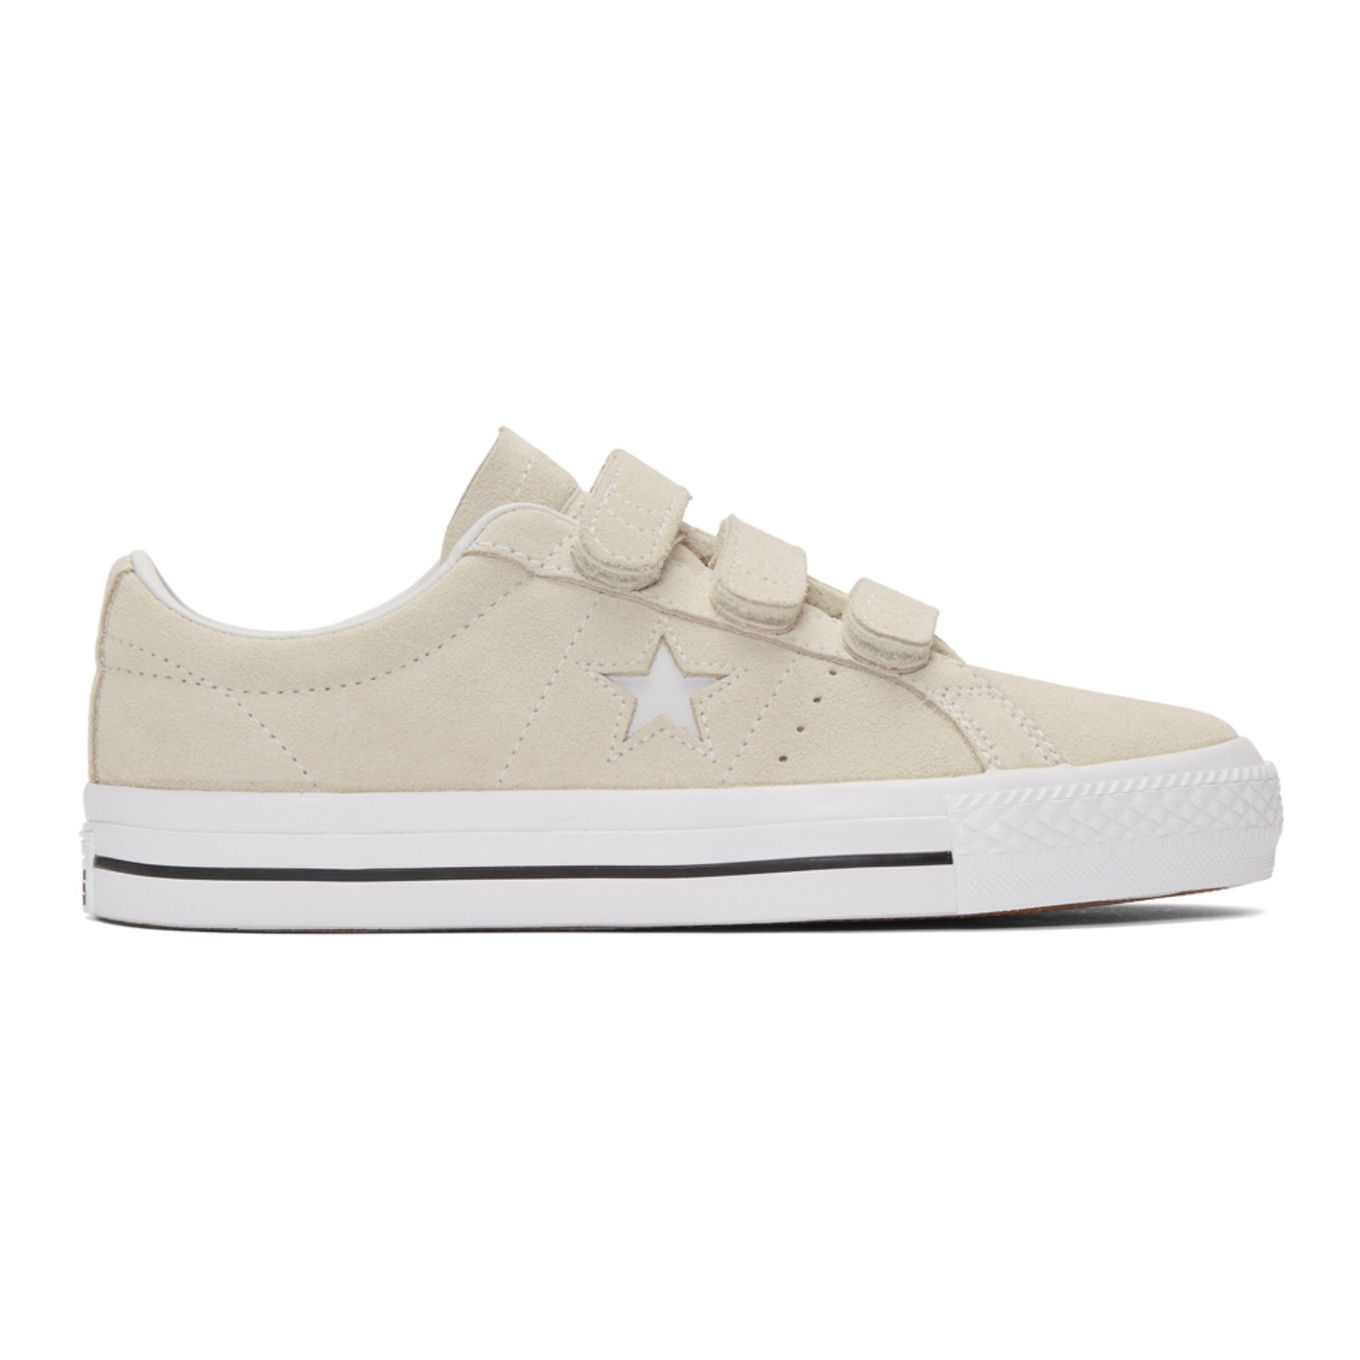 bc454e583610e5 Converse - Off-White Suede One Star Pro Sneakers